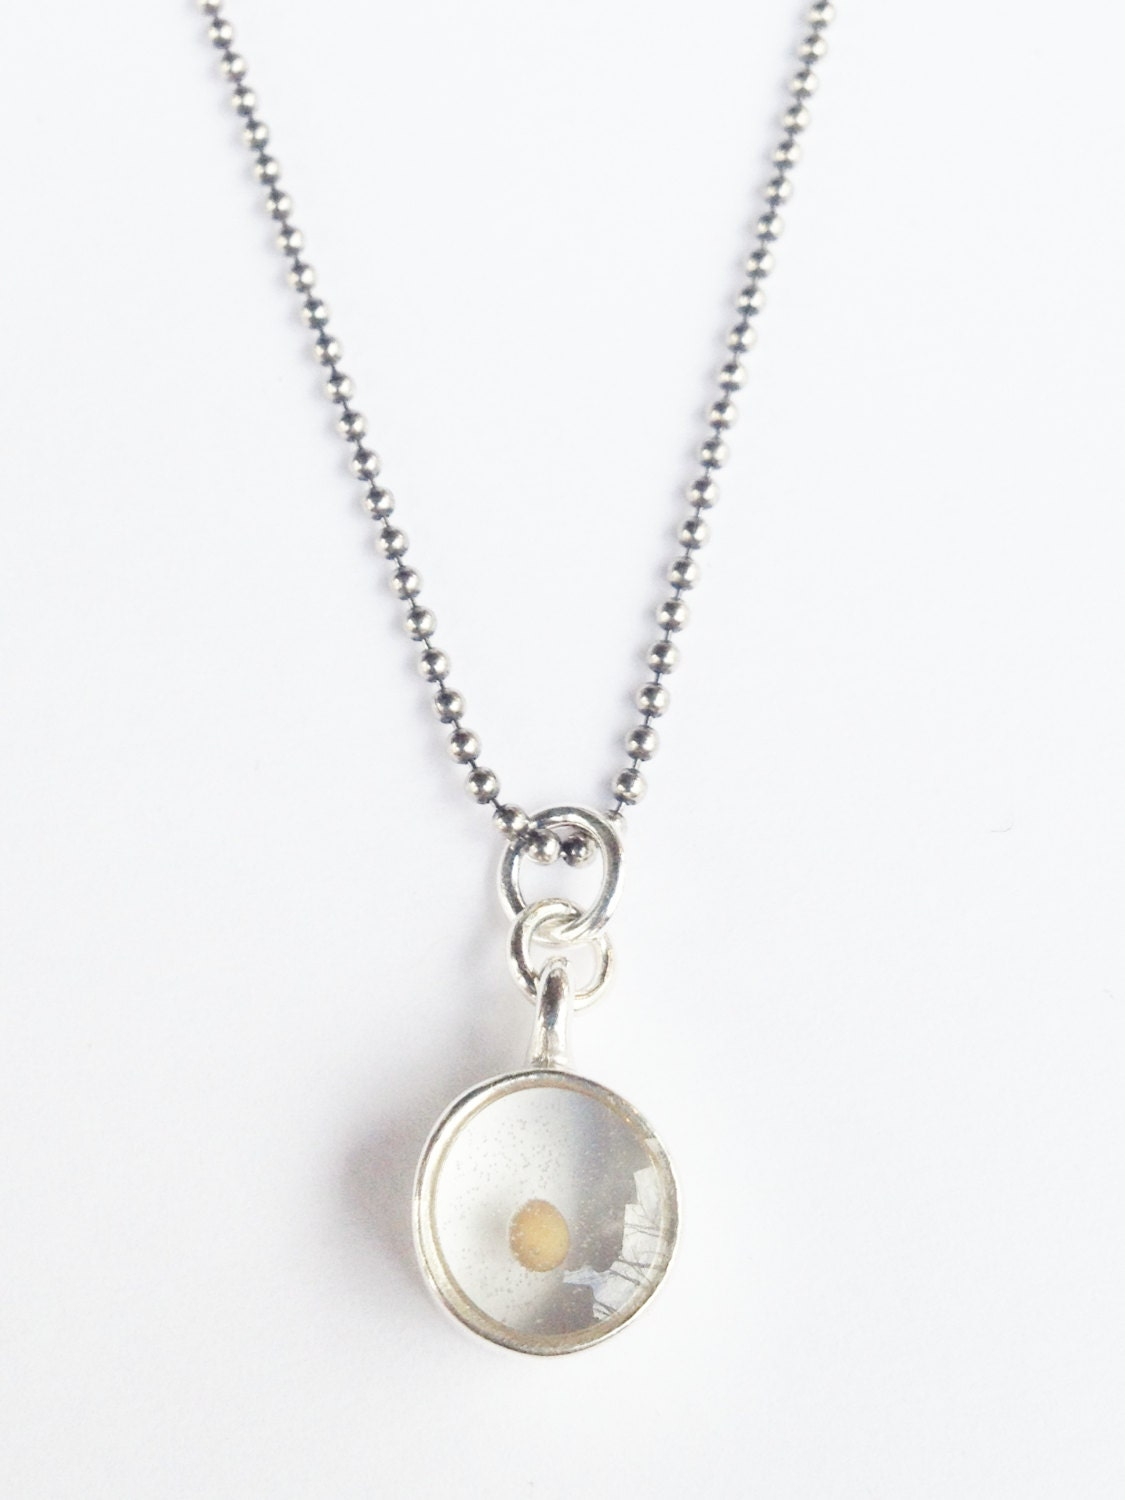 Medium Mustard Seed Charm Necklace In Sterling Silver Silver